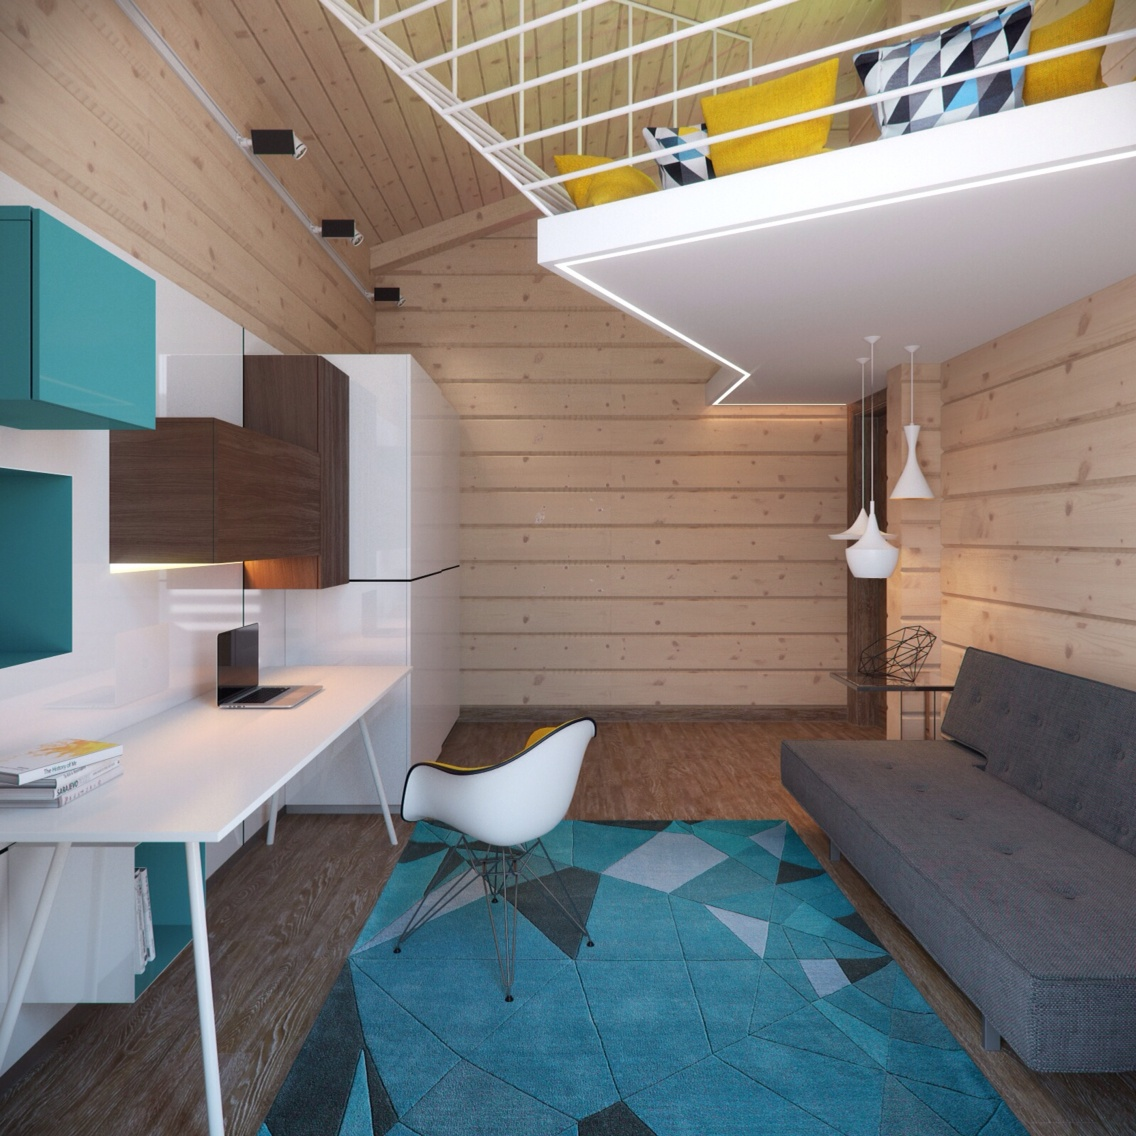 Eames Chair - 3 creative top floor rooms with wood accents